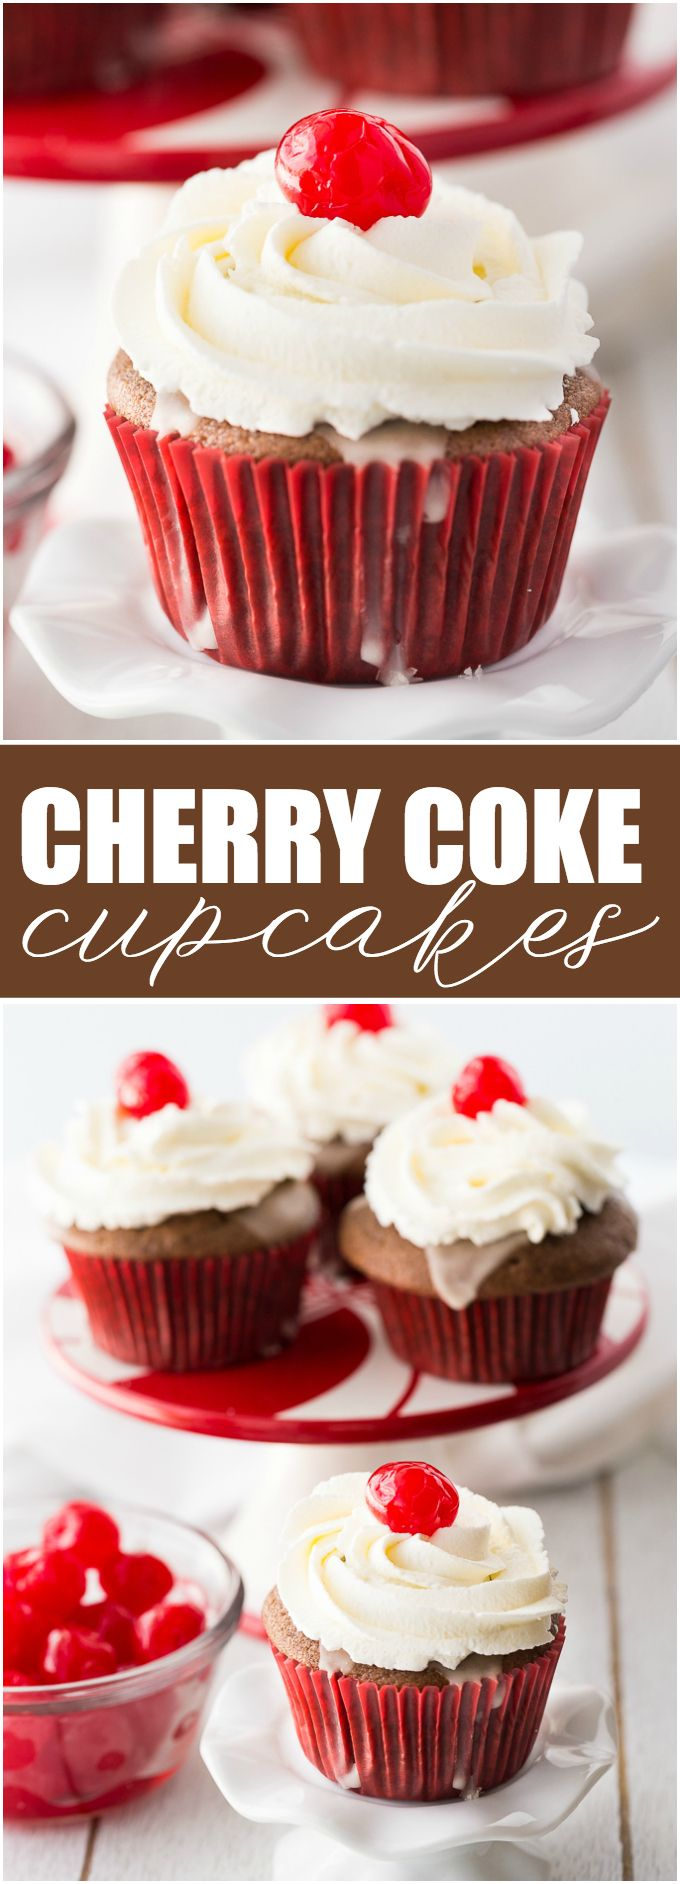 Cherry Coke Cupcakes - Each cupcake has a cherry in the middle, glazed with a Coca-Coca sugar glaze and topped with sweet and fluffy whipped cream.